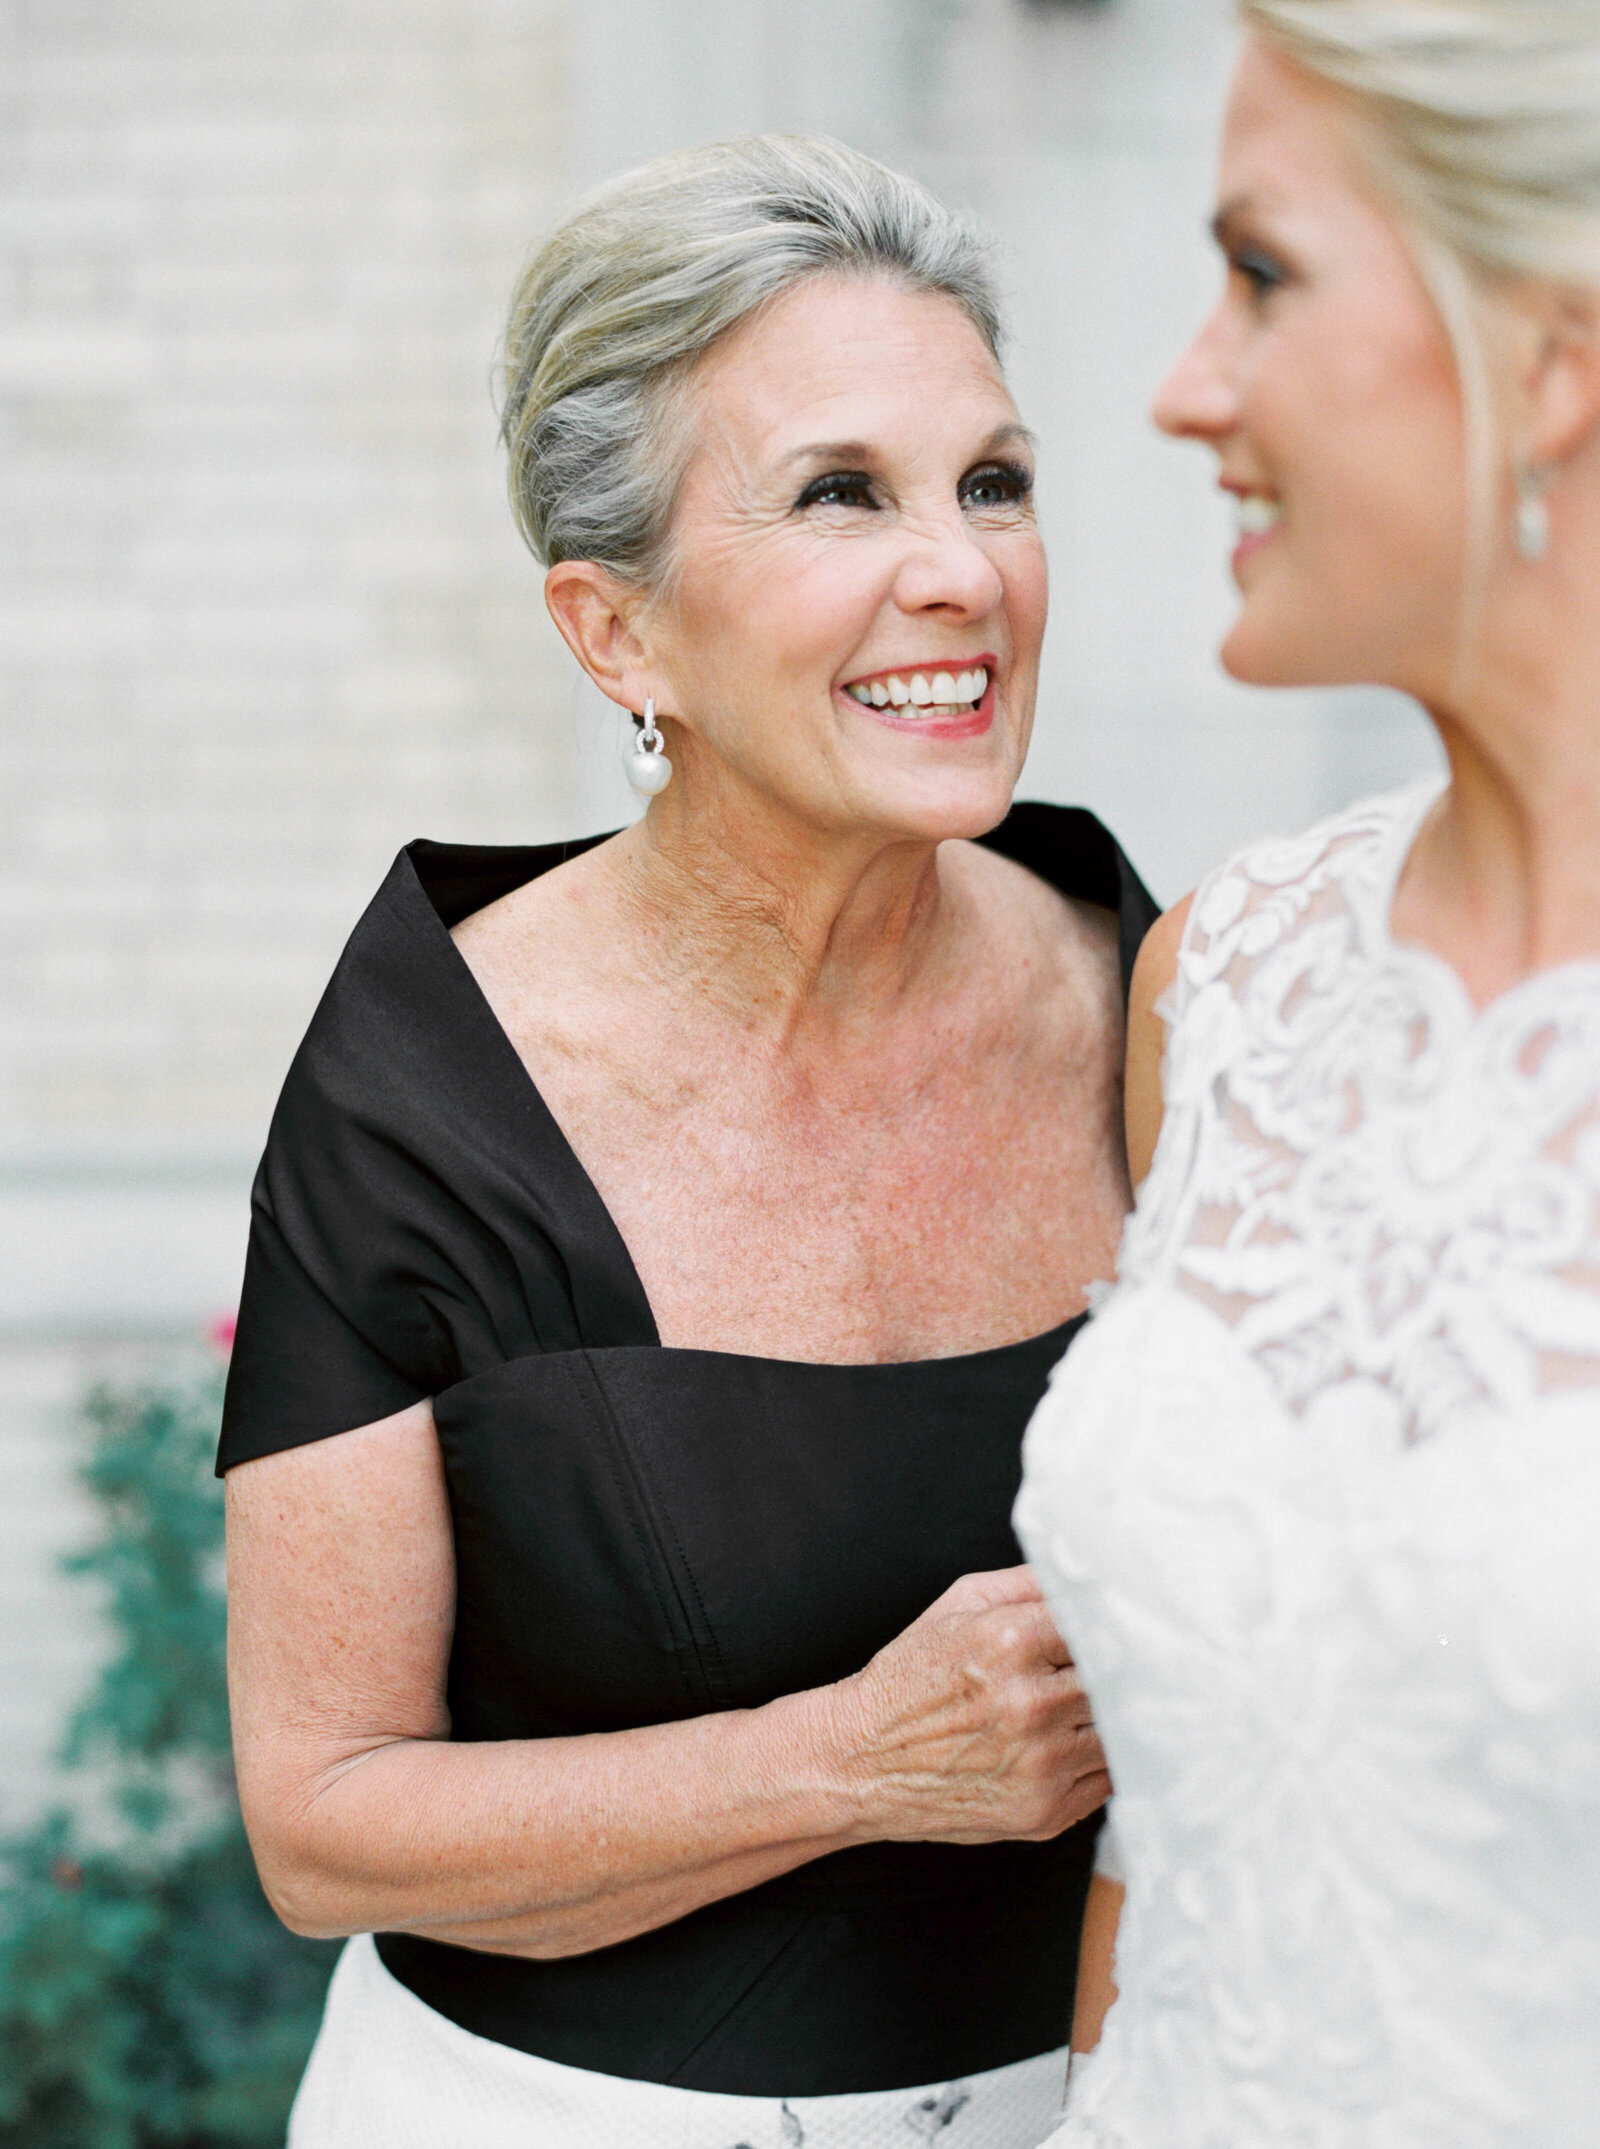 sarah kate photography dallas wedding photographer _0006